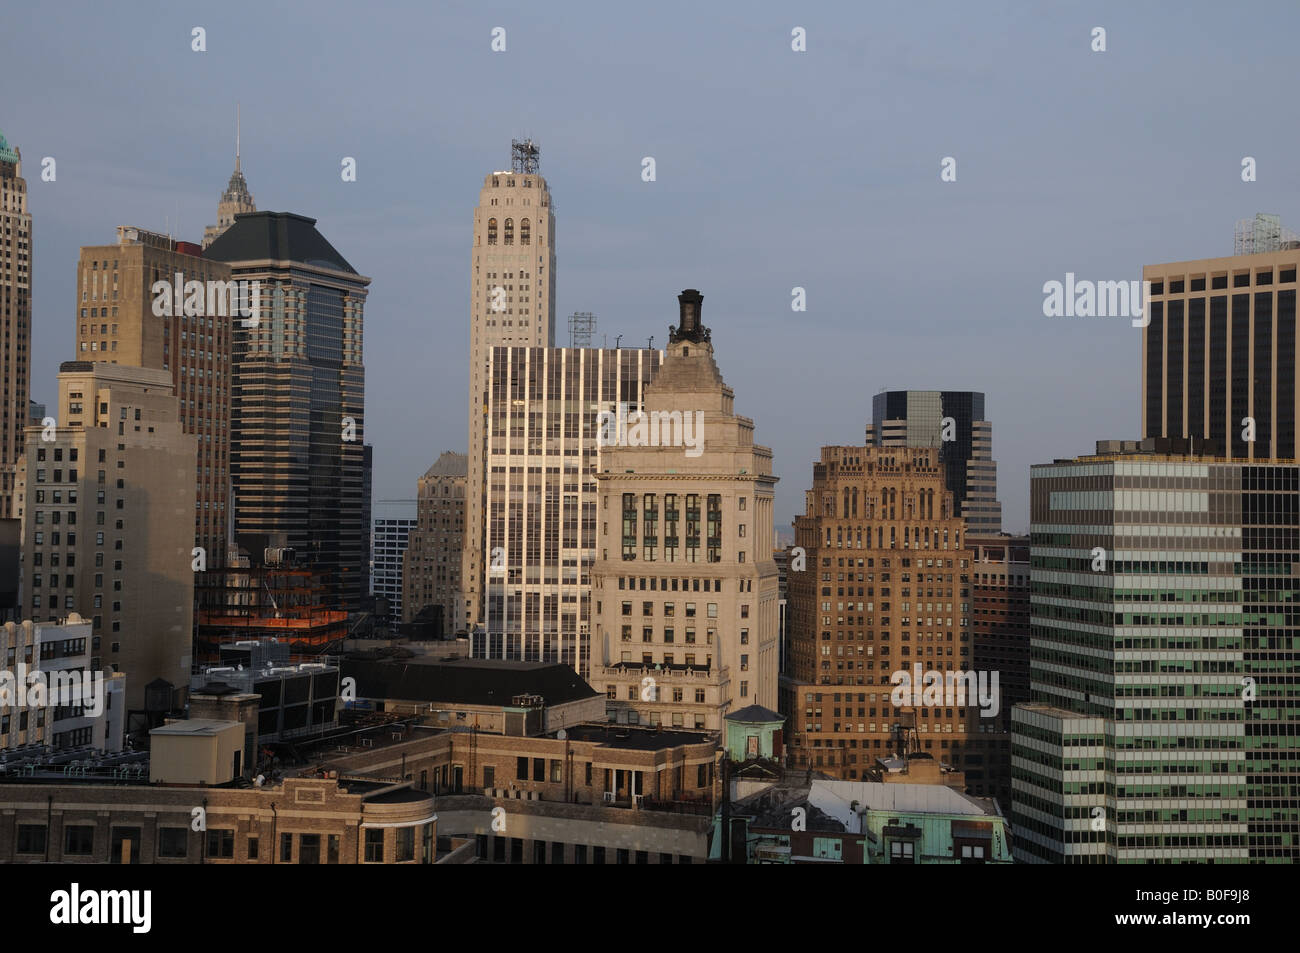 The skyline of Lower Manhattan. The stepped top of the former Standard Oil building is in the center of the picture. Stock Photo